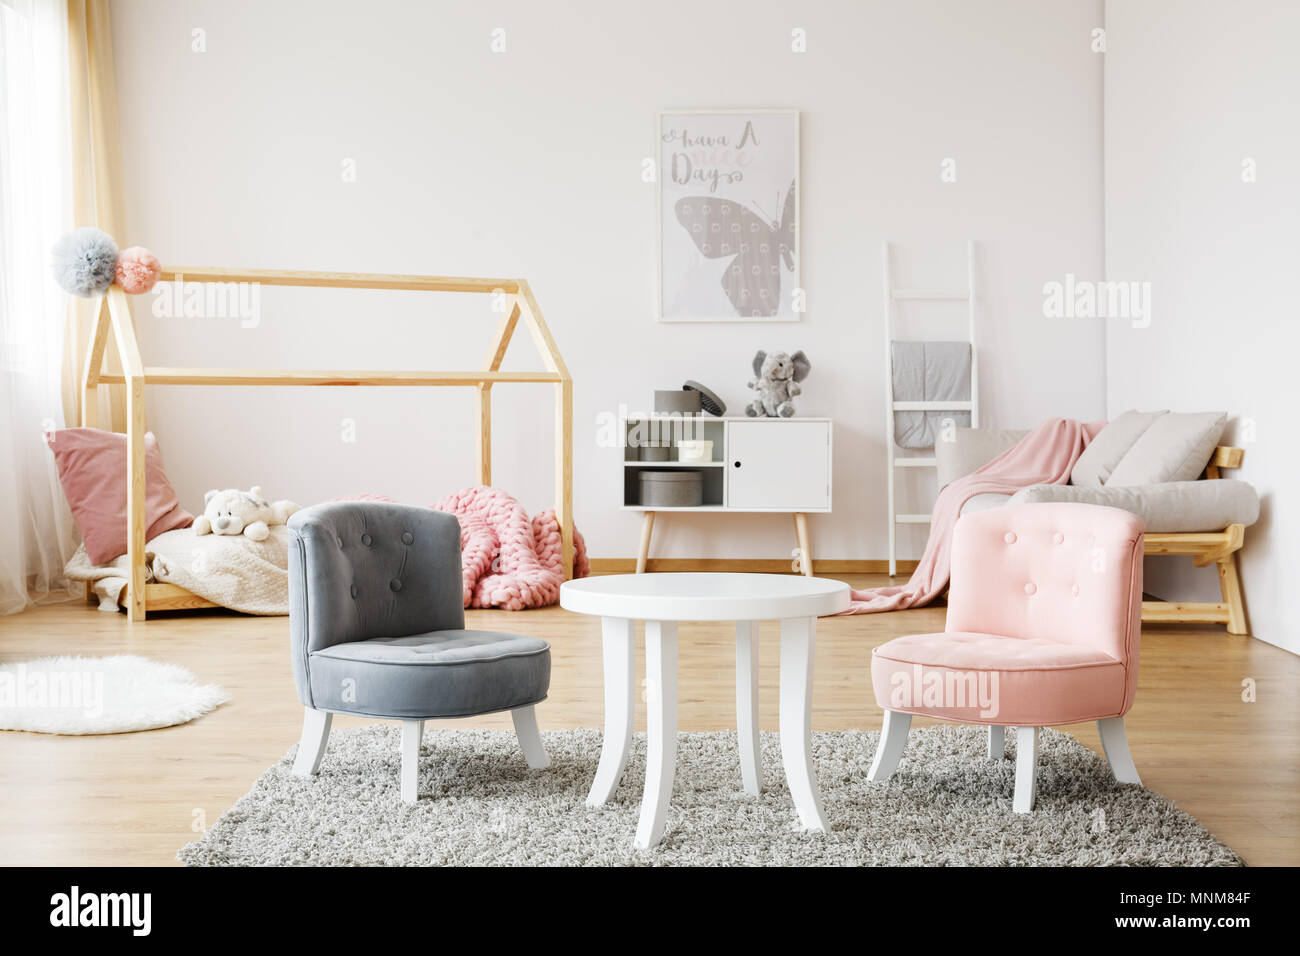 Ordinaire Grey And Pink Small Cute Chairs Standing On Soft Carpet In Cozy Baby Room